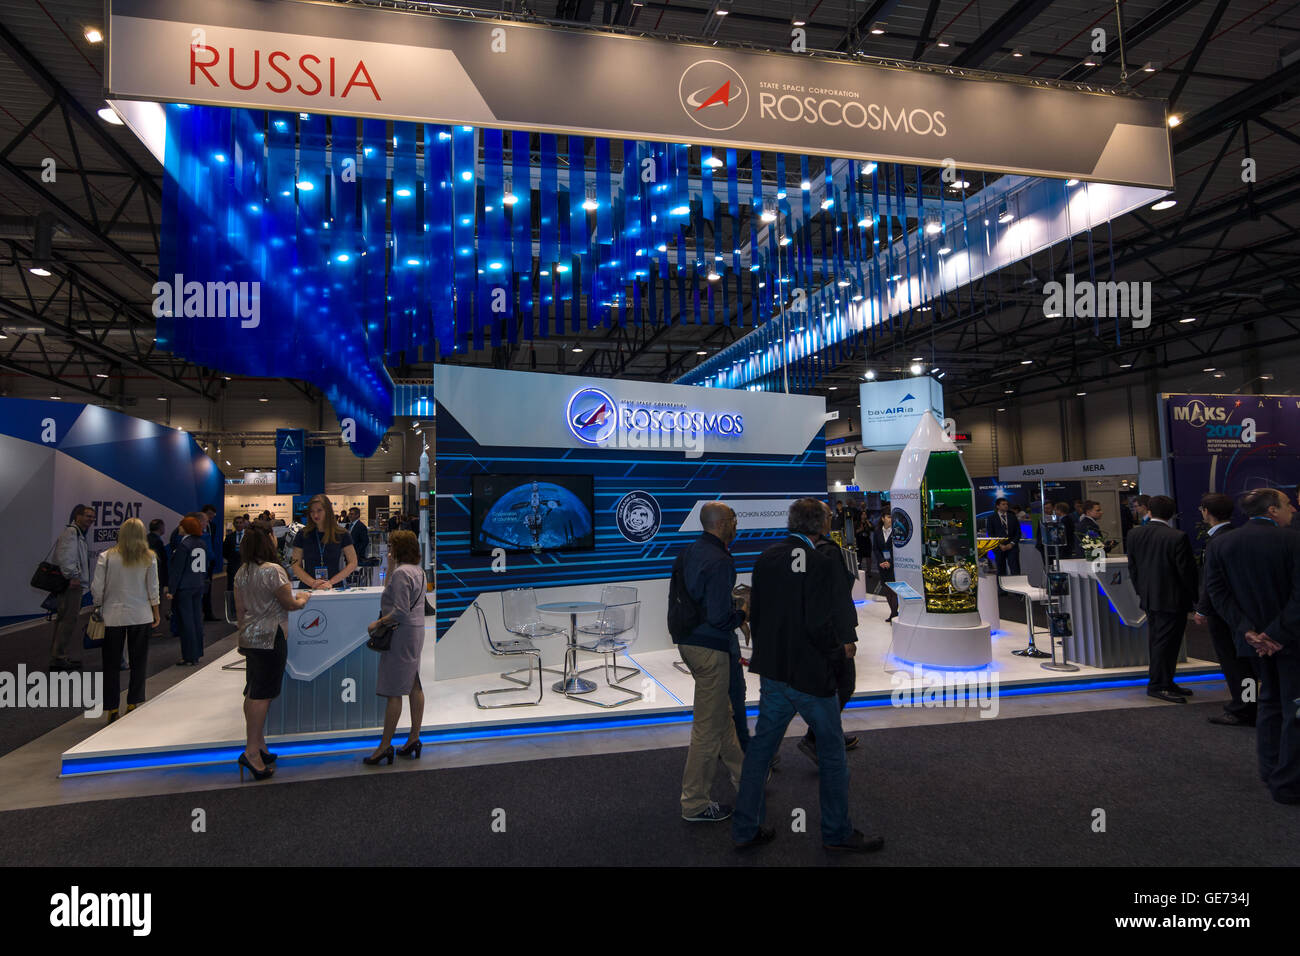 BERLIN, GERMANY - JUNE 01, 2016: The stand of State Space Corporation - Roscosmos (Russia). Exhibition ILA Berlin - Stock Image